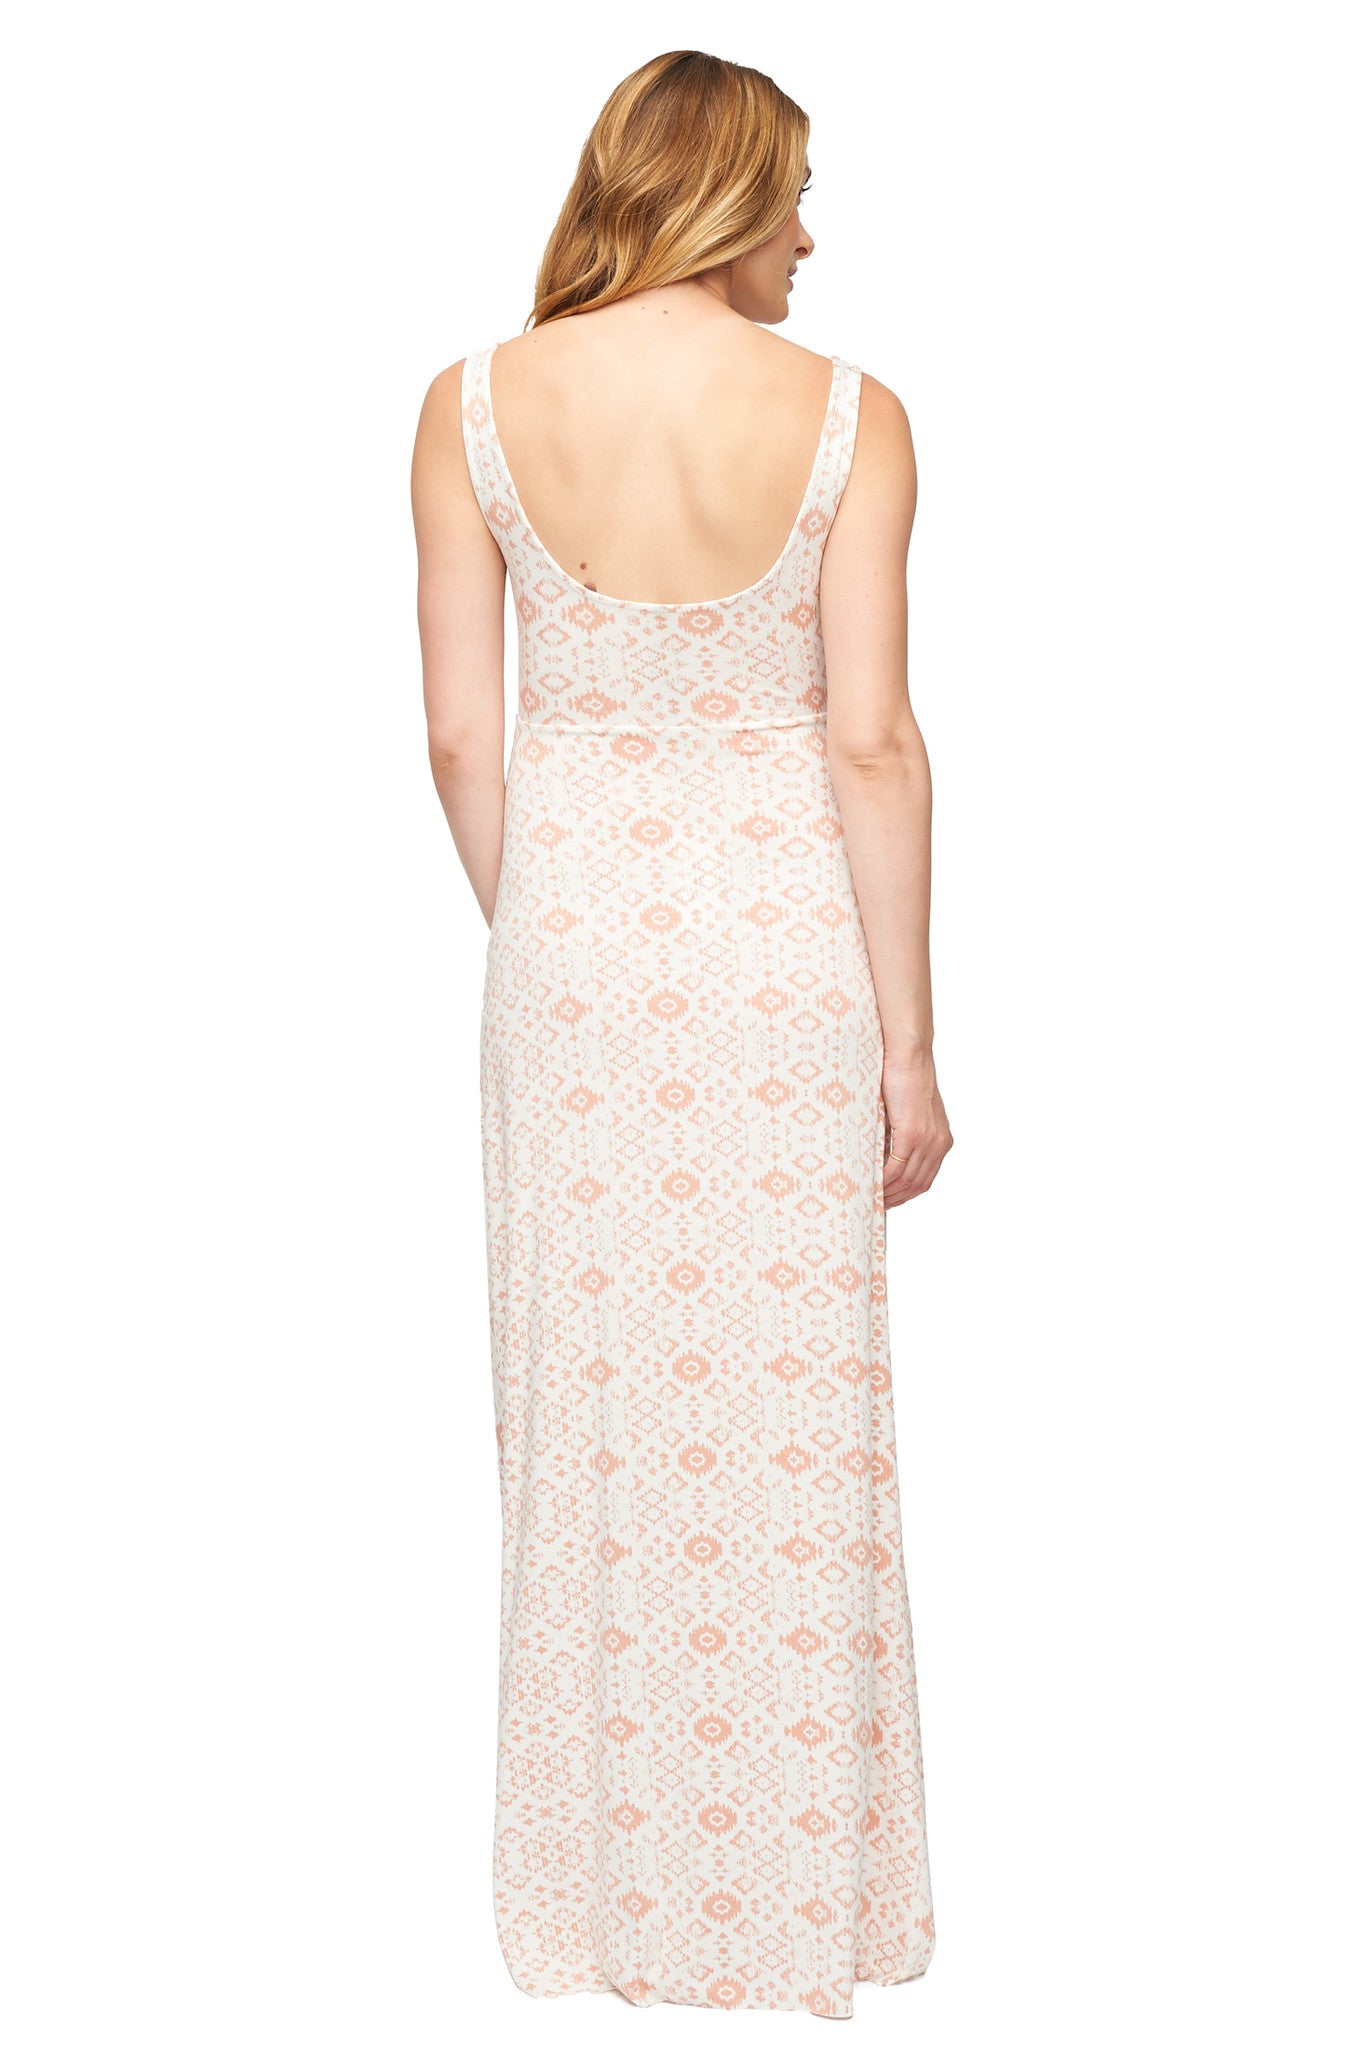 Esther Dress Print - Dusty Medallion